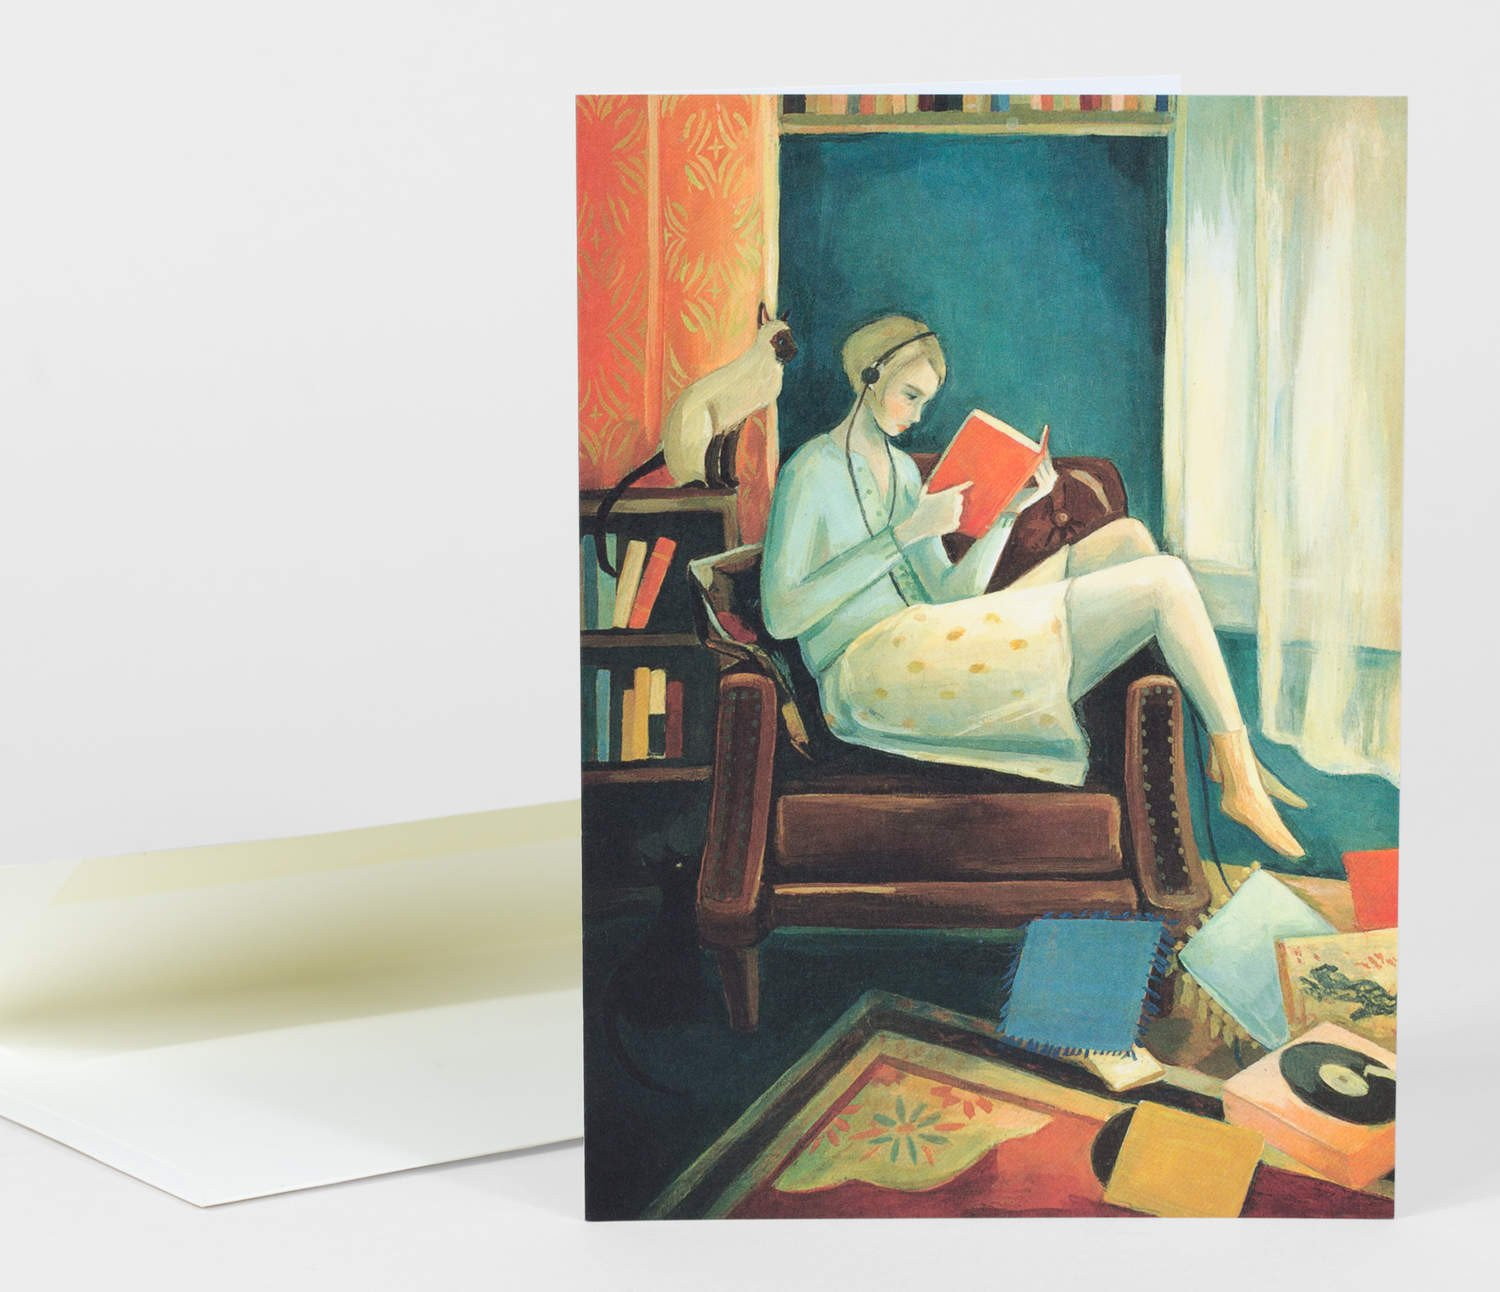 An illustrative greeting card depicting a woman with headphones on in a chair reading a book. There is a cat on the bookshelf behind her and pillows as well as a record player on the ground in front of her.